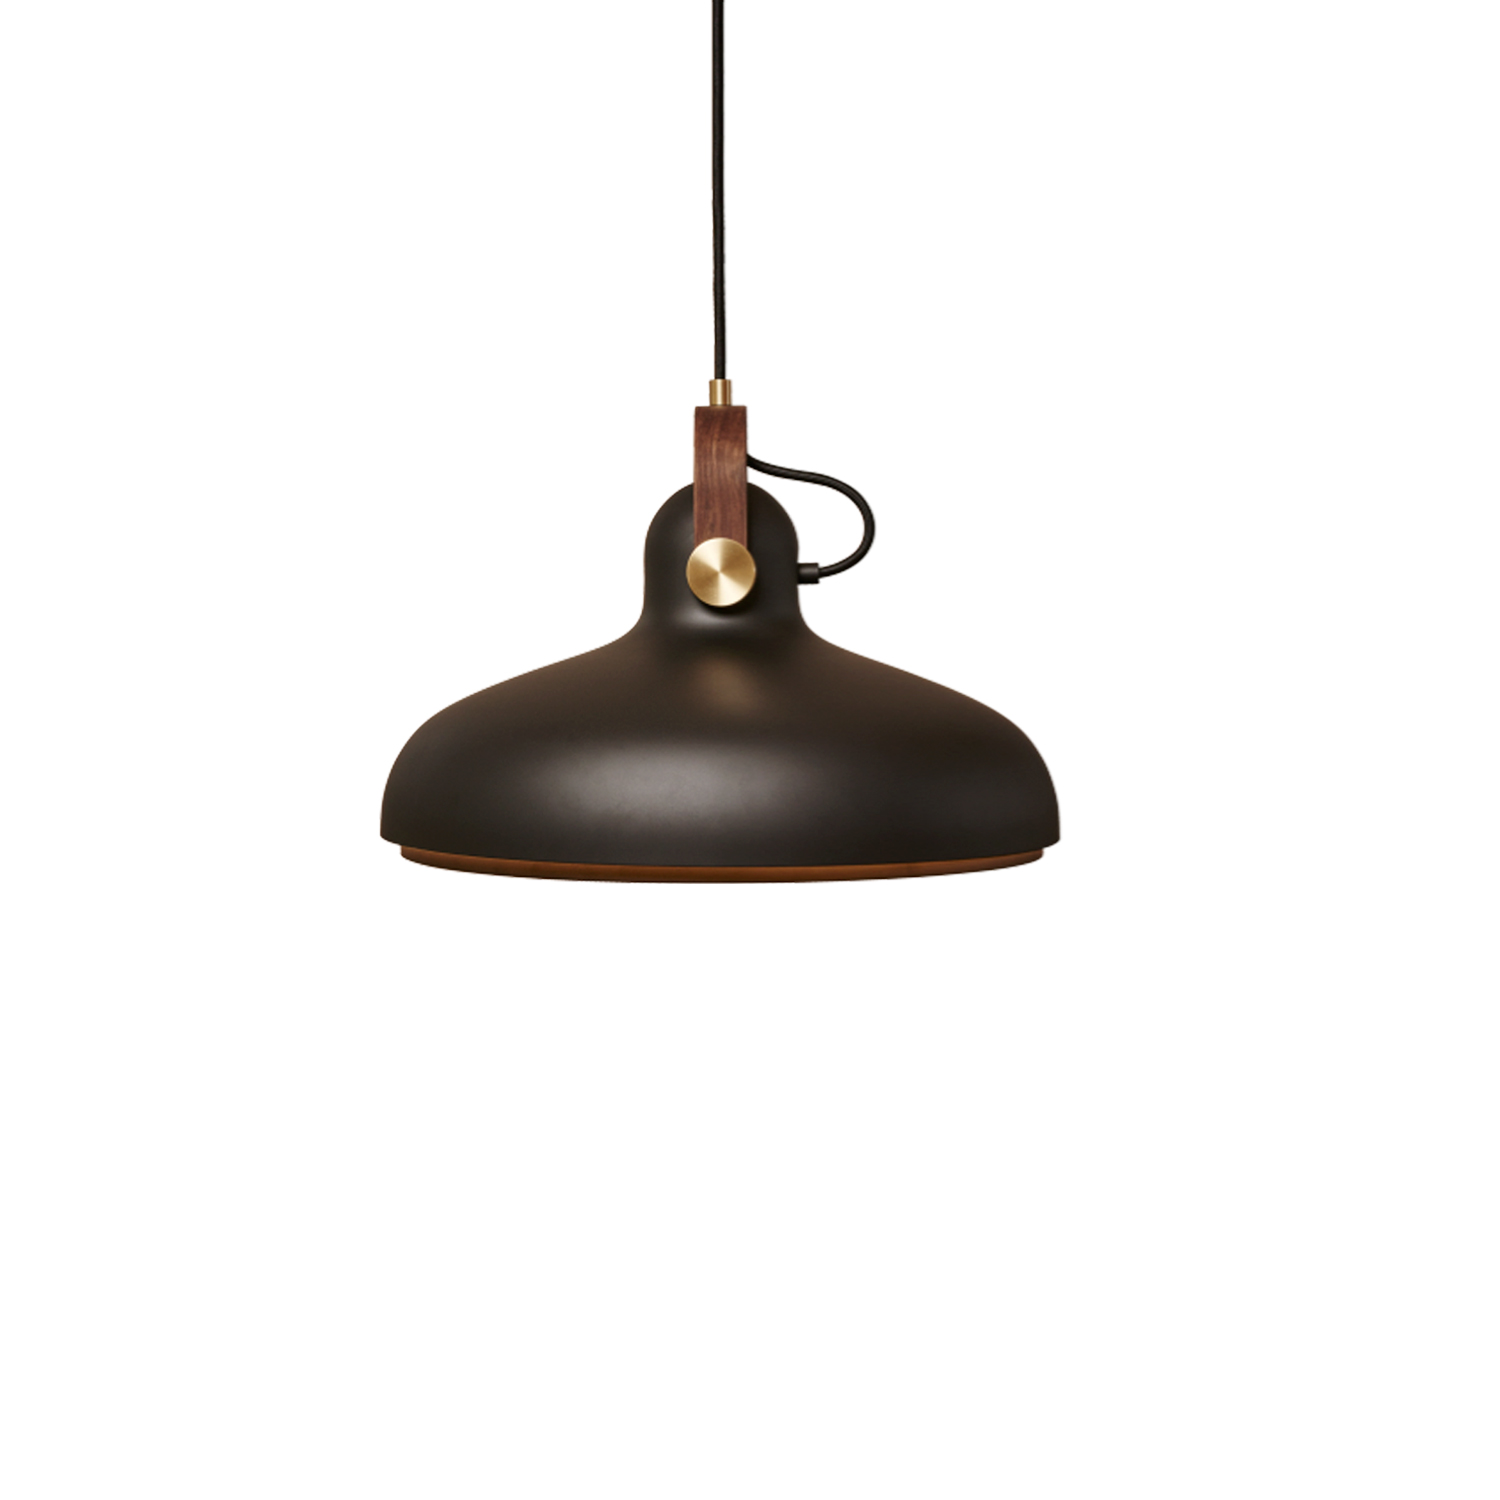 Carronade Large Pendant  - A large modern pendant with a wide opening that directs perfect diffused light for everyday use. Ideal for that perfect dining experience, family gatherings or any desktop activity. Fashioned in the familiar sleek stylings of earlier models, the exact materials have been manipulated to create yet another masterpiece in modern lighting design.  CARRONADE Large comes in a black or sand painted aluminium finish with brass or aluminium metal discs and American walnut or oak details. All models are fitted with LED light bulbs.  The exact manufacturing principles for this beautiful series with attention to detail were used to create this stunning pendant that nestles comfortably among its counterparts. | Matter of Stuff